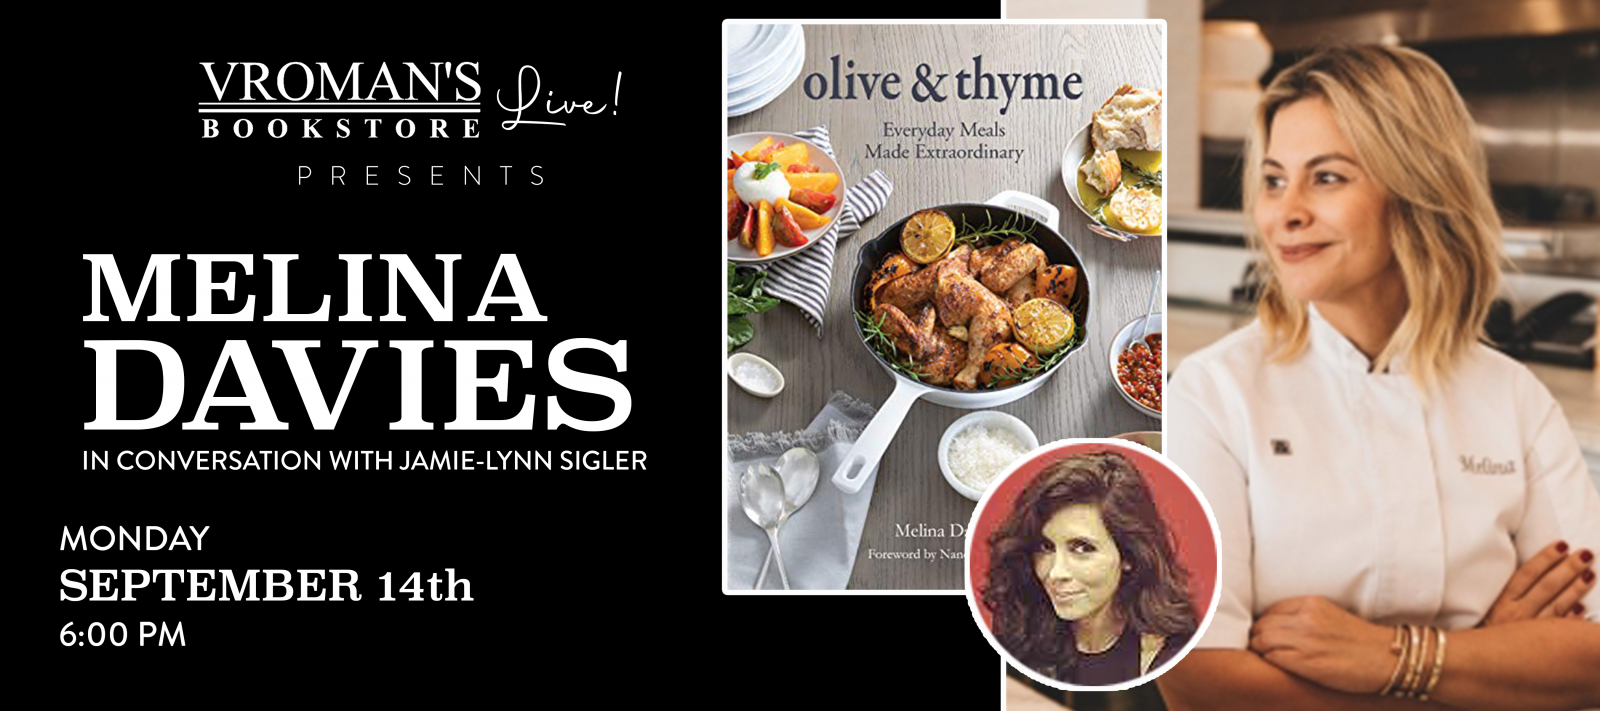 Vroman''s Live presents Melina Davies, in conversation with Jamie-Lynn Sigler, on Monday, September 14, at 6pm